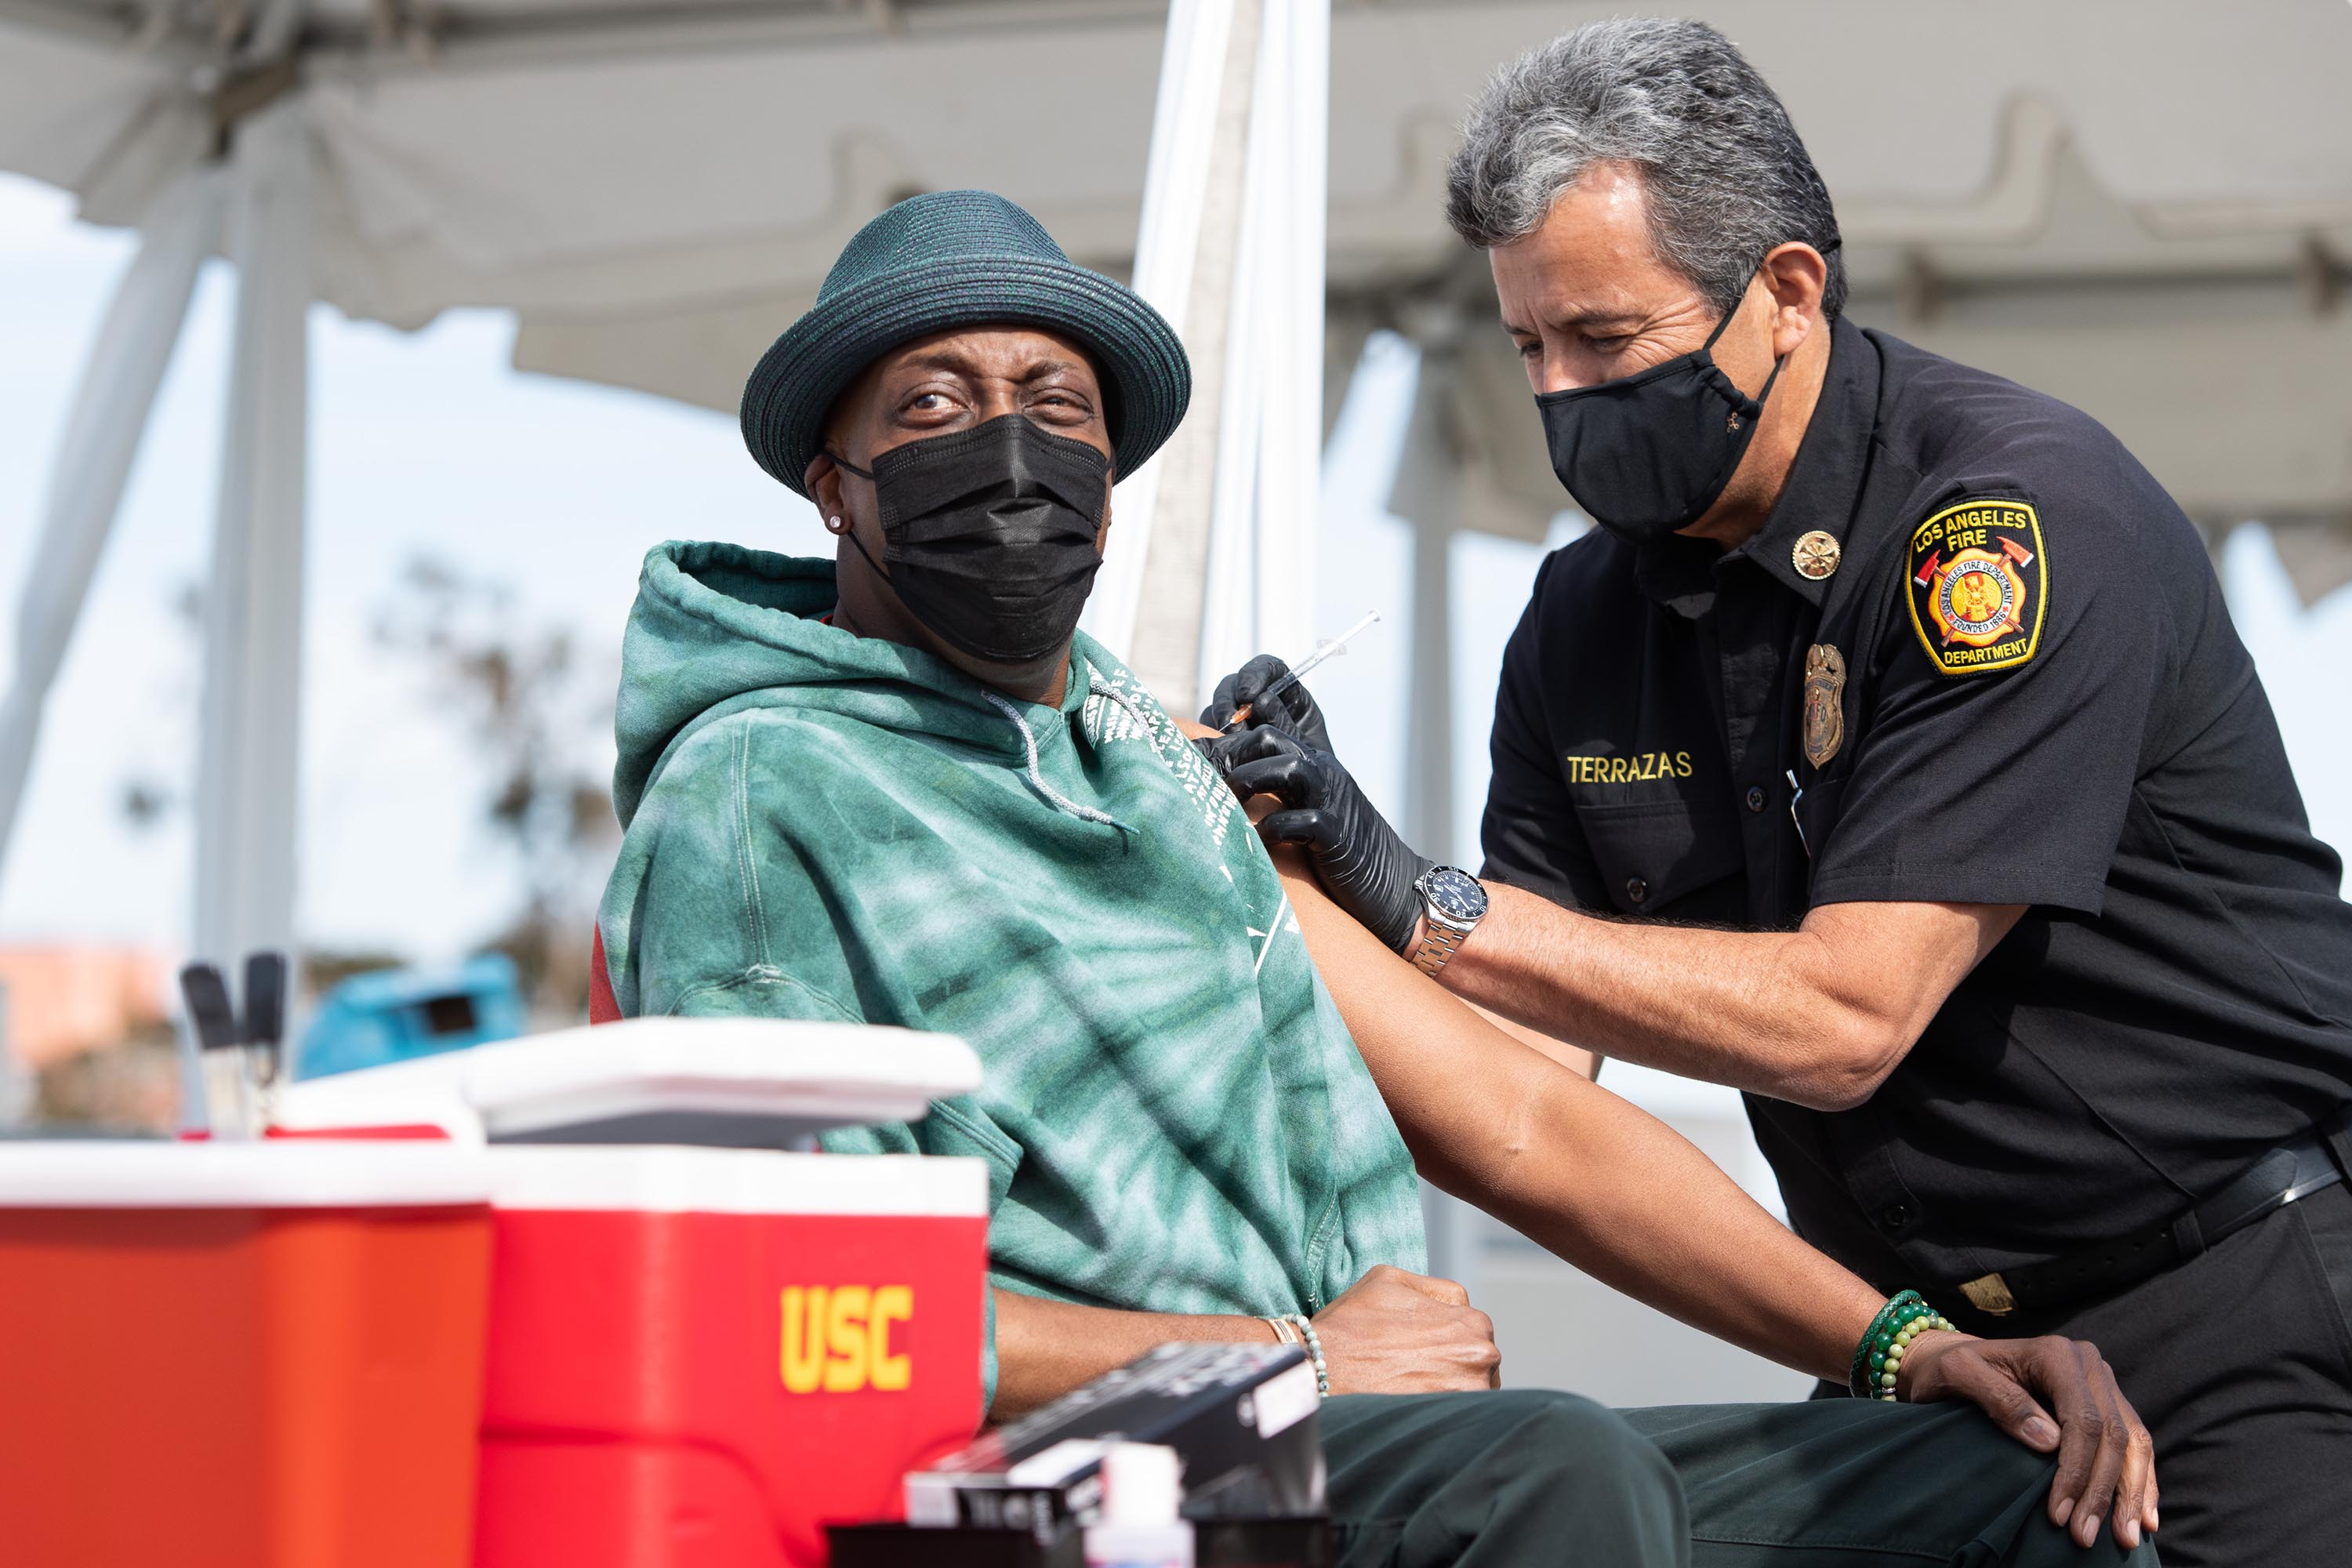 District 2 – Supervisor Holly J Mitchell<br> <b>March 24, 2021 - Arsenio Hall gets his COVID-19 vaccination at USC.</b><br><i>Photo by Bryan Chan / Board of Supervisors</i>